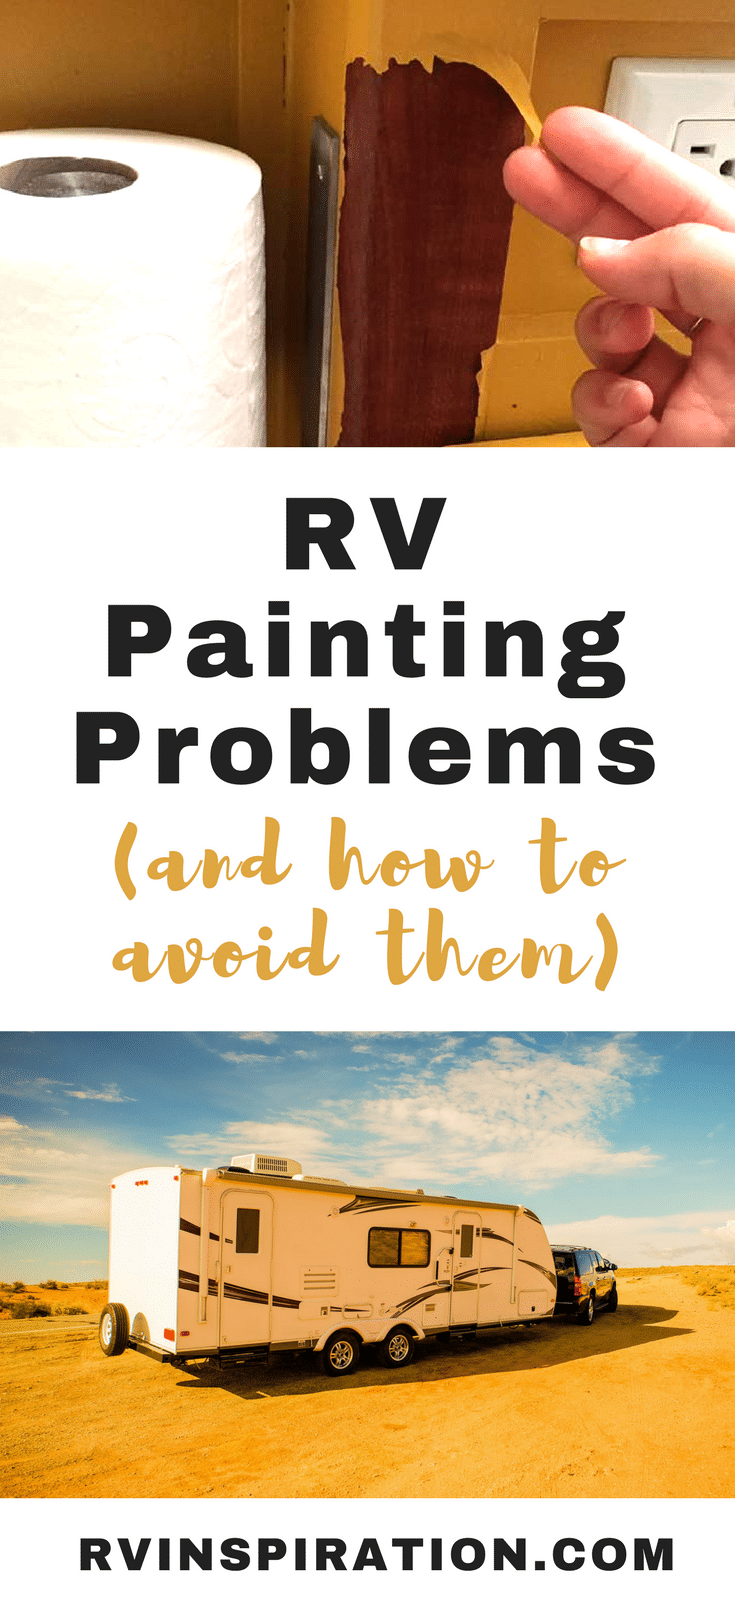 Watch out for these frustrating problems encountered by people who painted the walls or cabinets in the interior of their camper or motorhome.